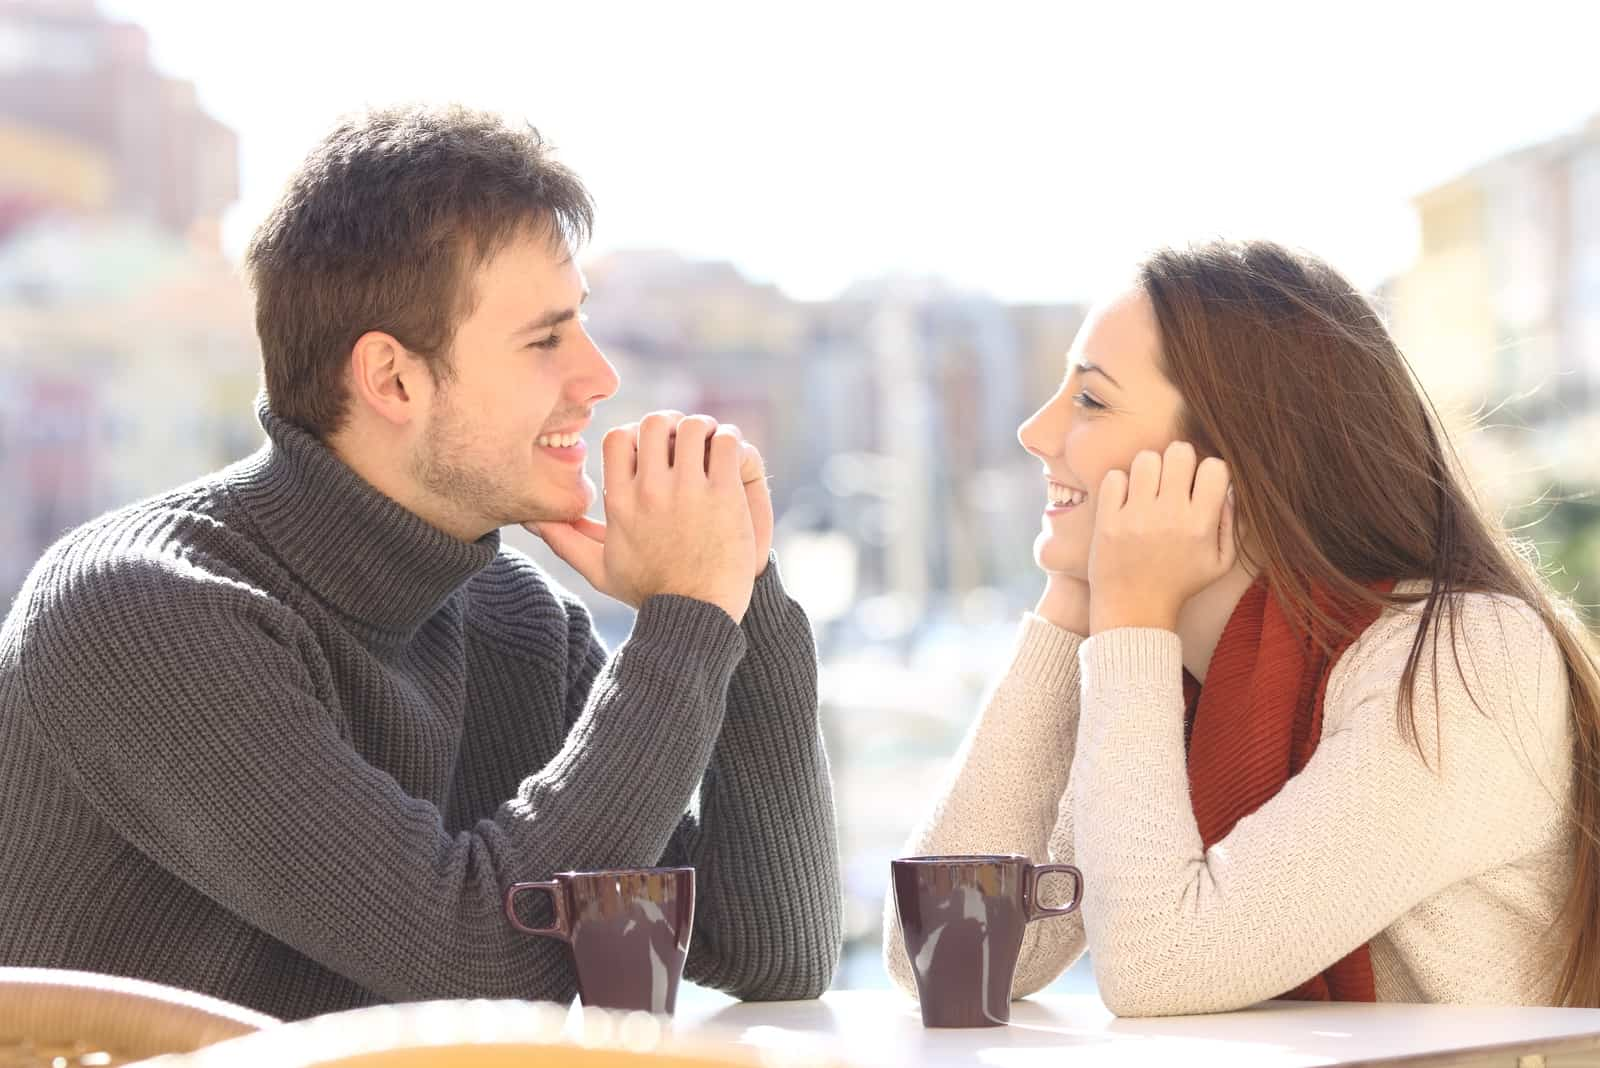 happy man and woman making eye contact while sitting at table